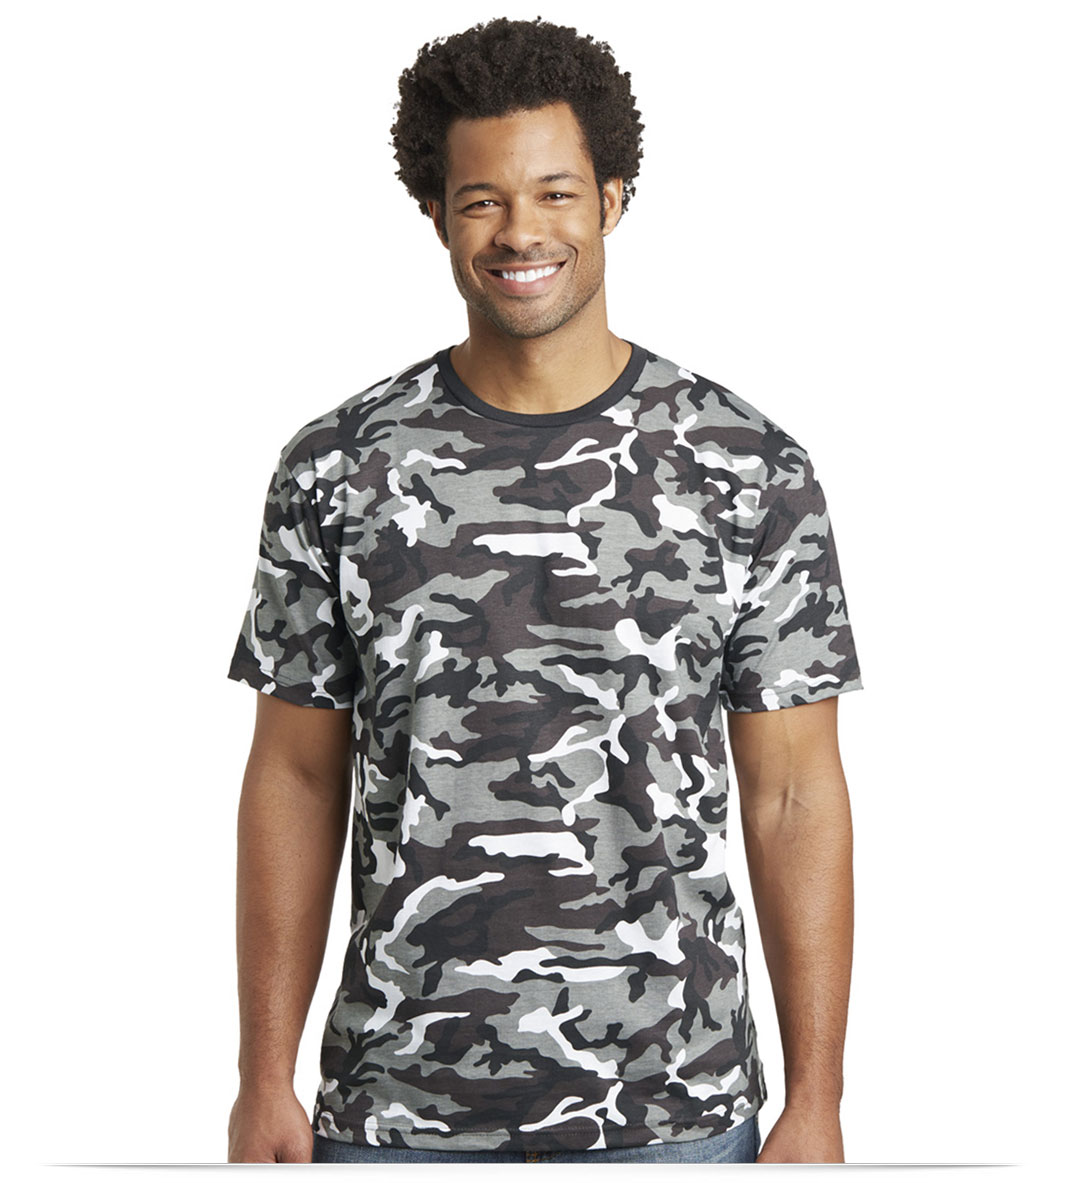 Design District Men's Camo Crew Tee